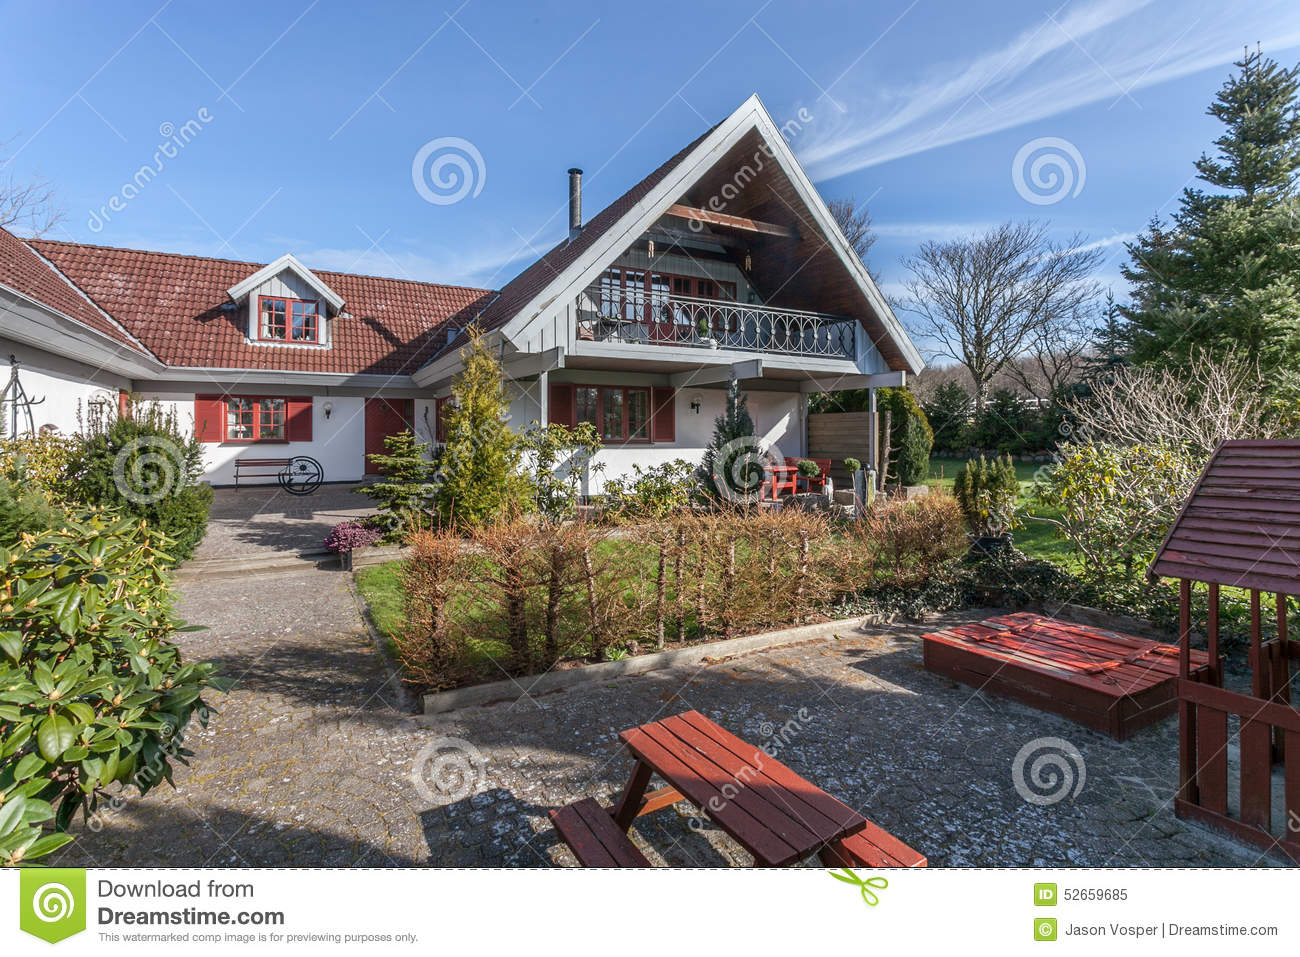 Farm house in denmark stock photo image 52659685 for Danish terrace